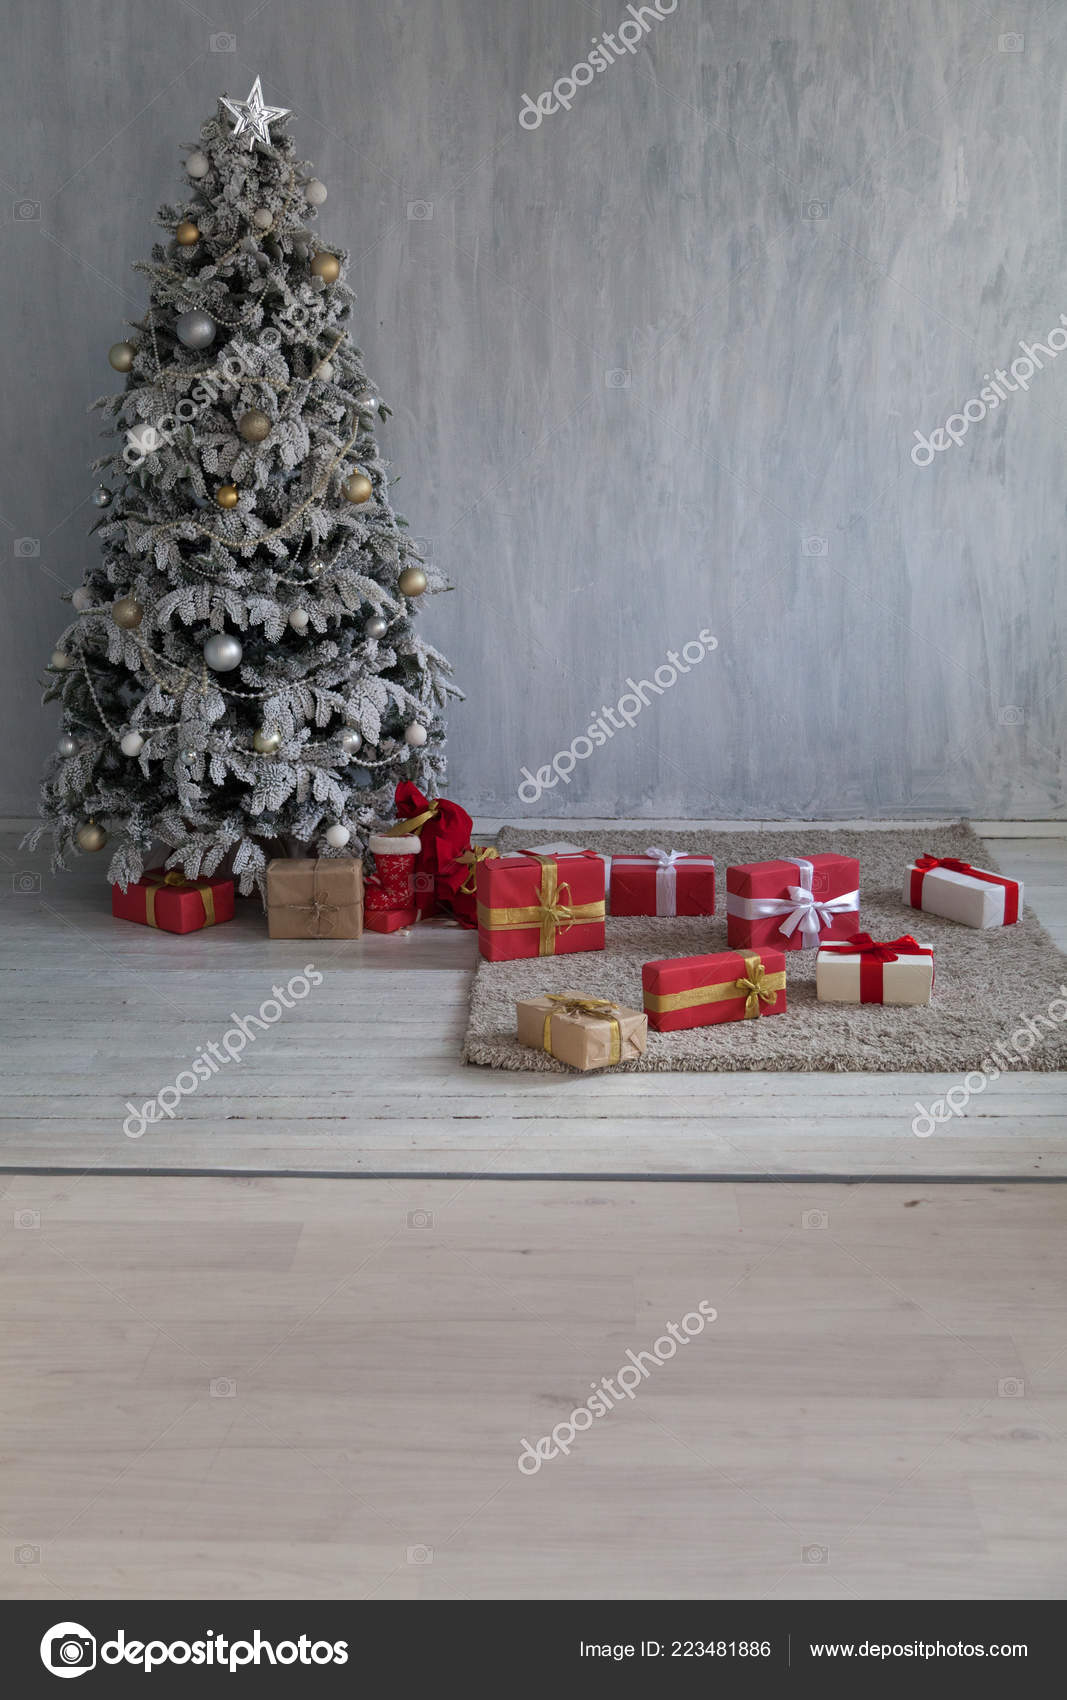 Winter Christmas New Year Tree Gifts Home Decor Stock Photo